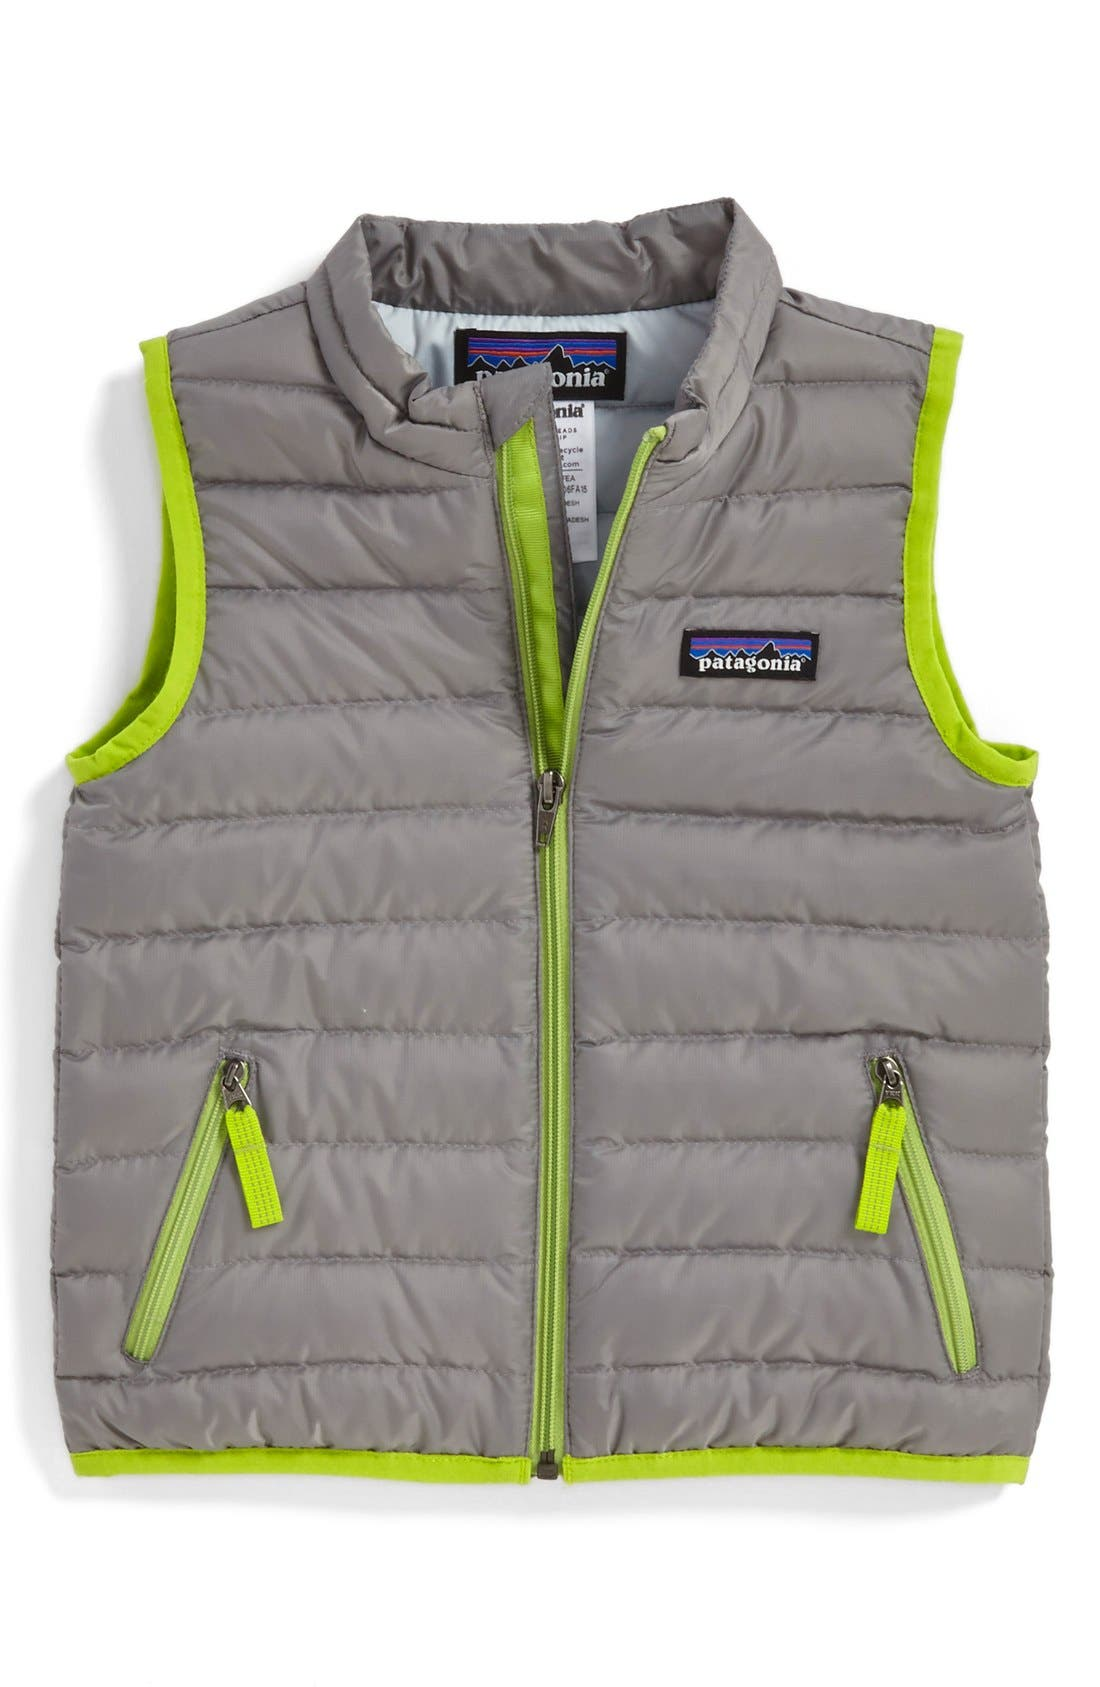 Alternate Image 1 Selected - Patagonia Windproof & Water Resistant Down Sweater Vest (Baby)